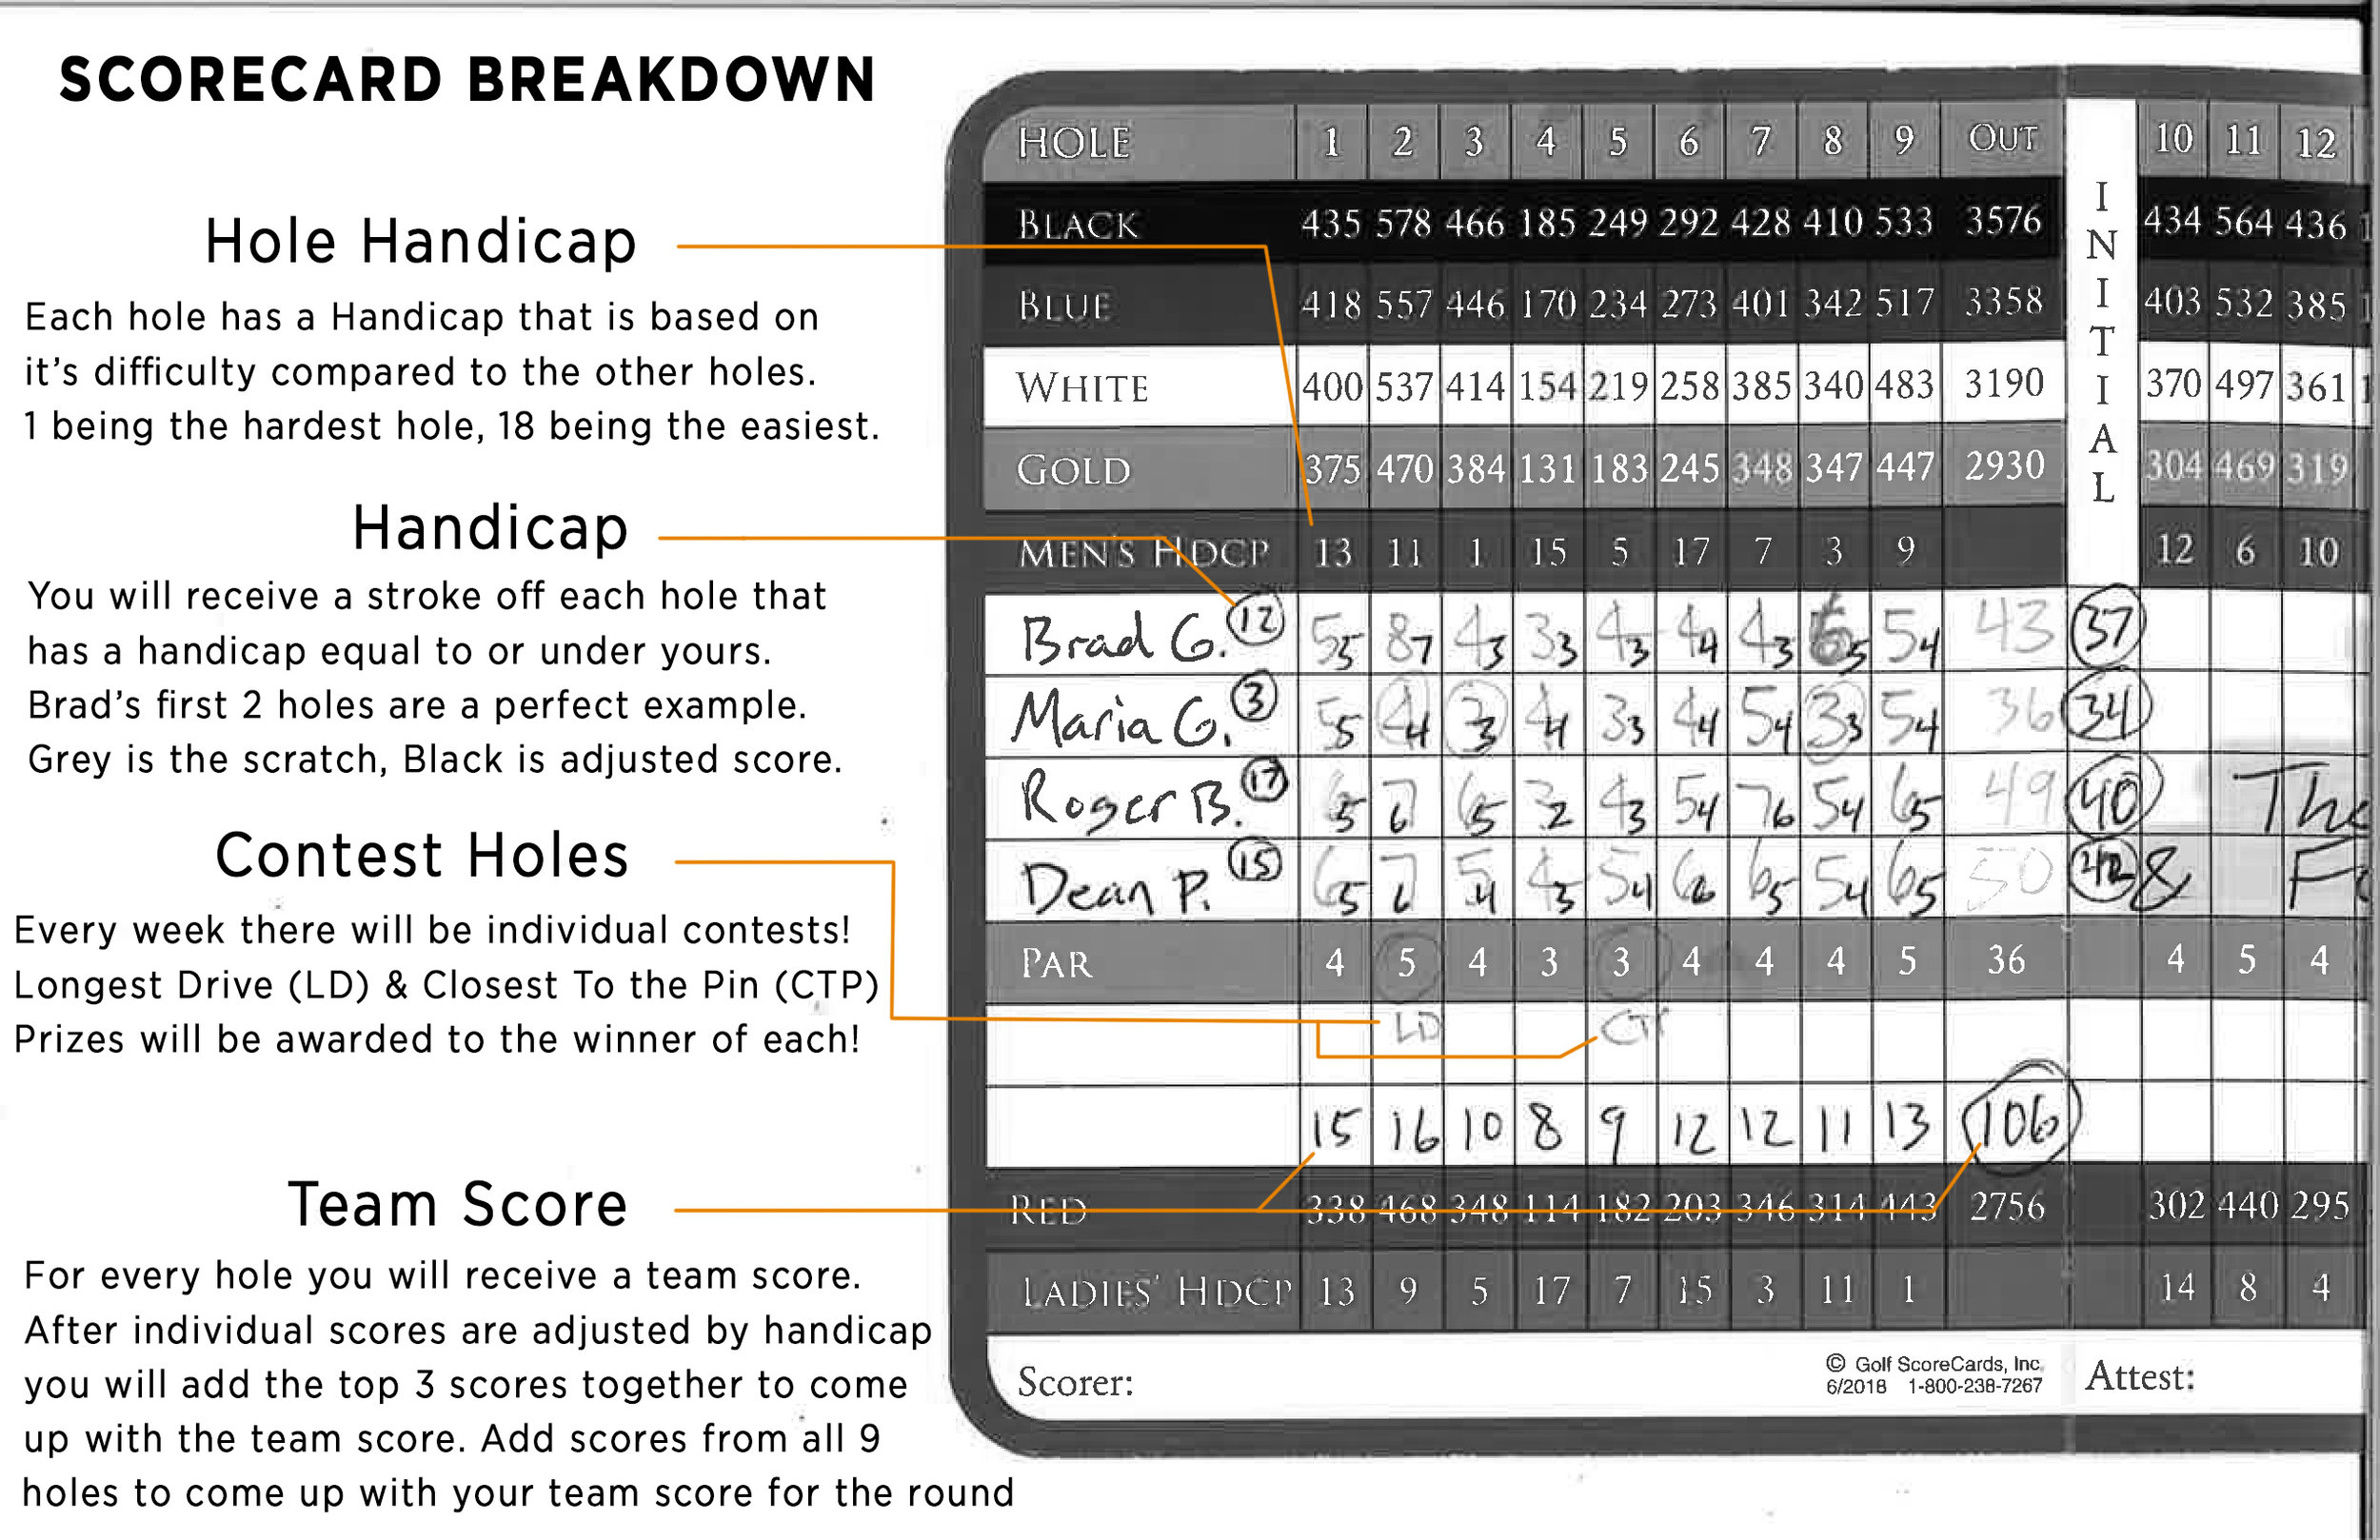 scorecard breakdown.jpg